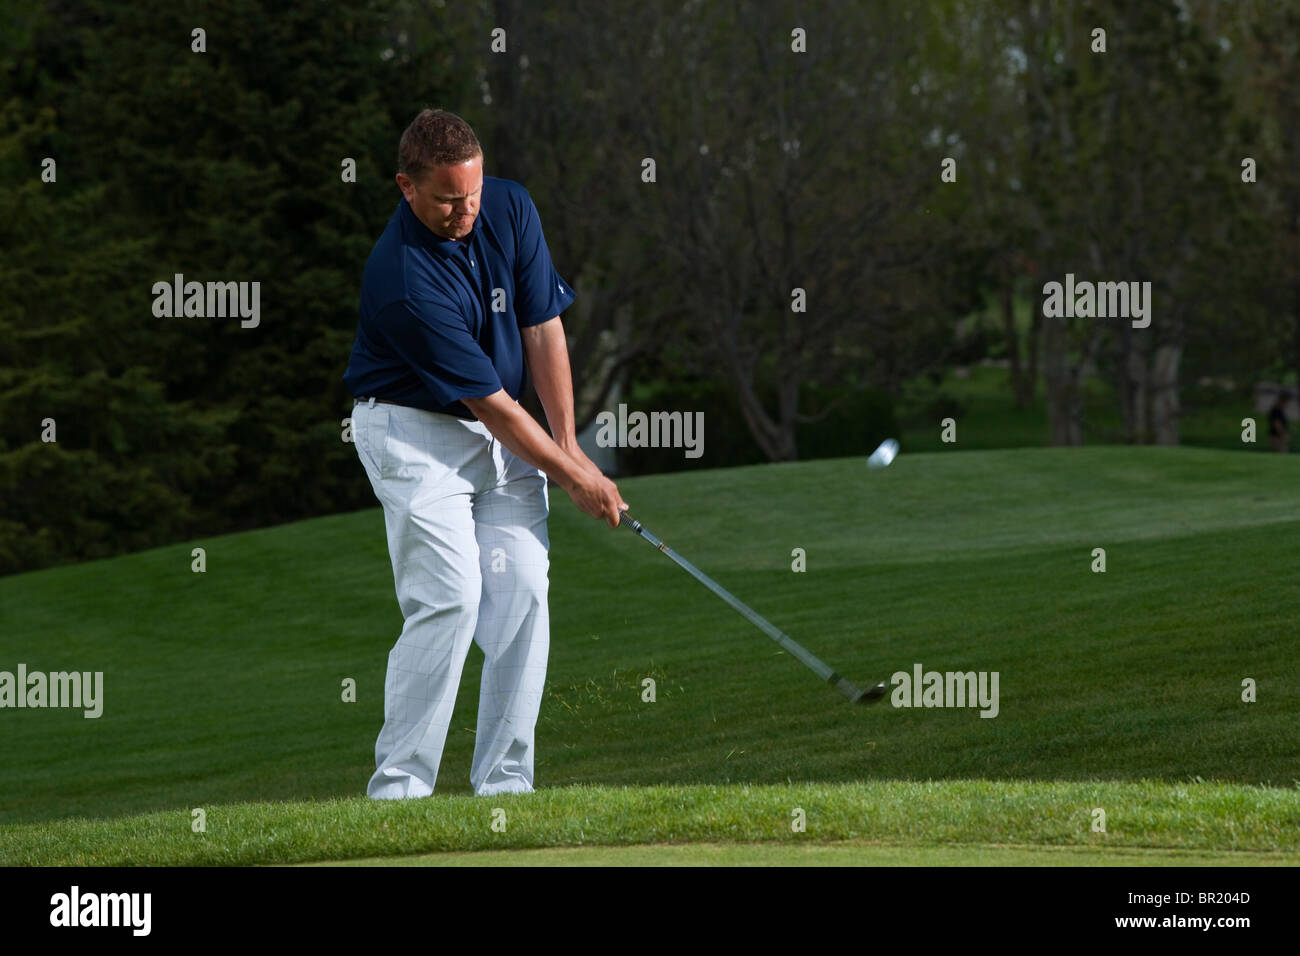 Dave McCleave PGA Professional at Southridge Golf Course Fort Collins, Colorado. - Stock Image